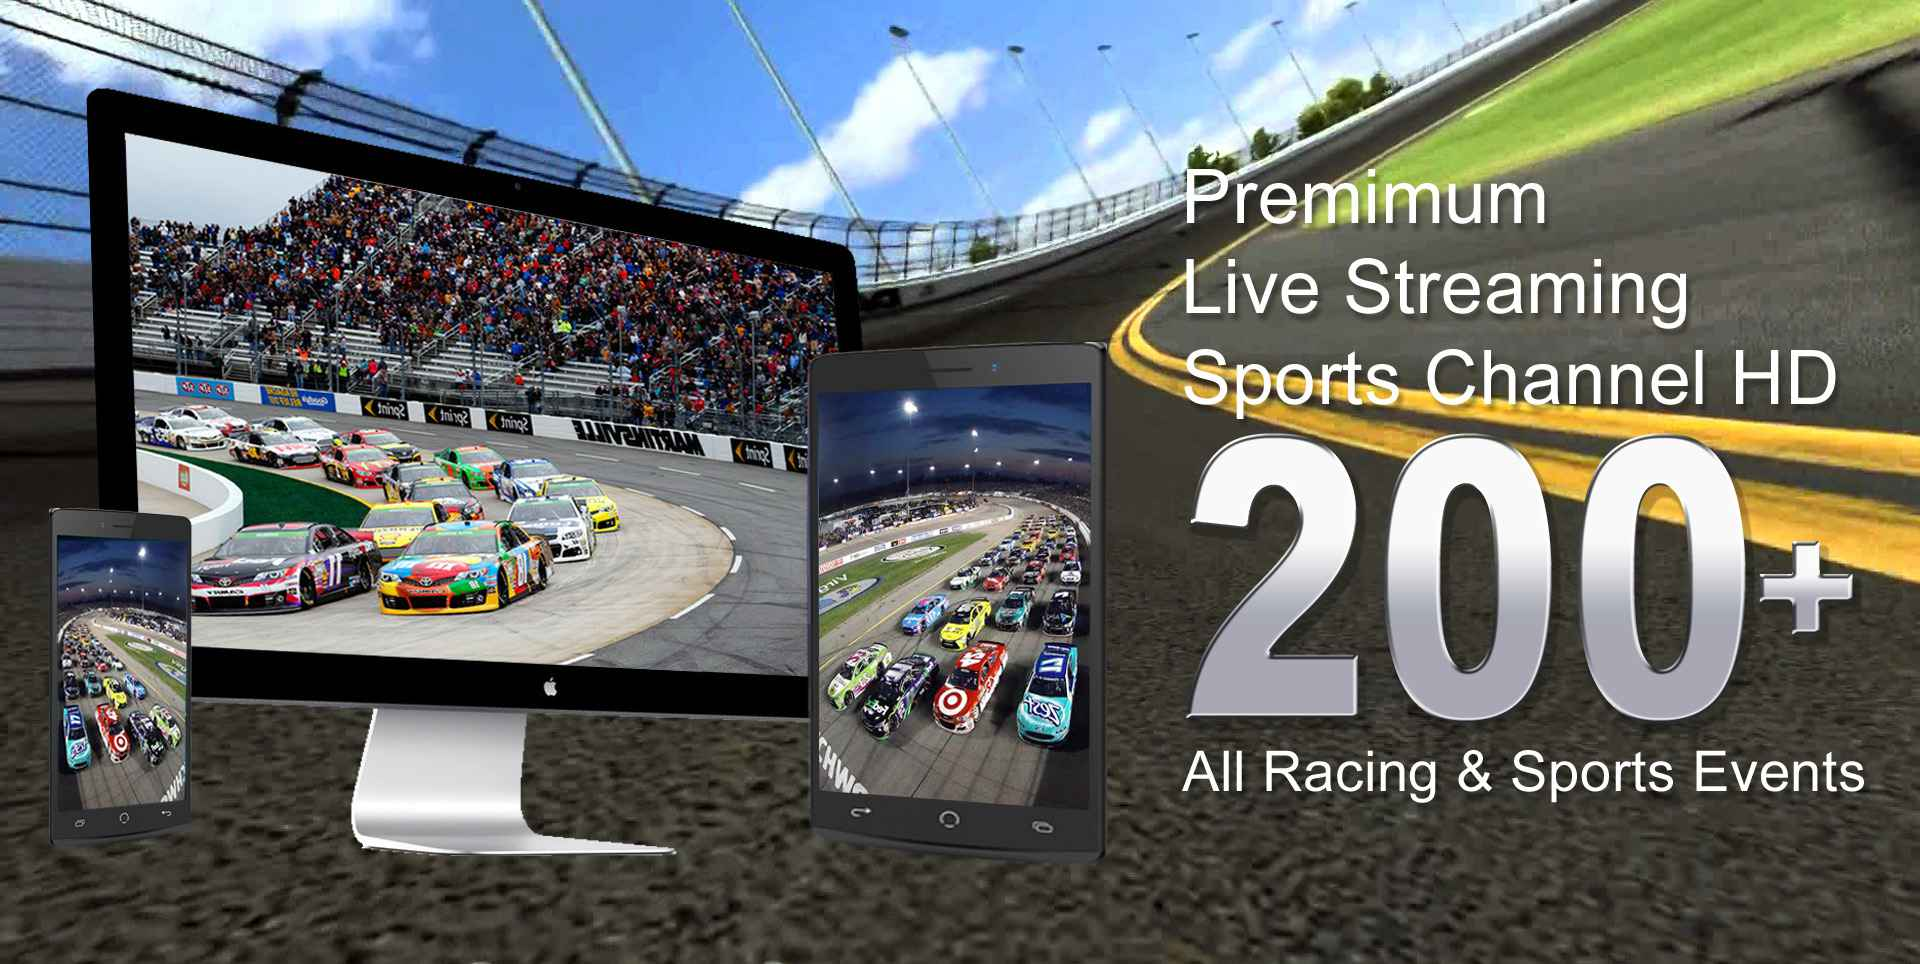 Watch 2014 Geico 500 at Talladega Online